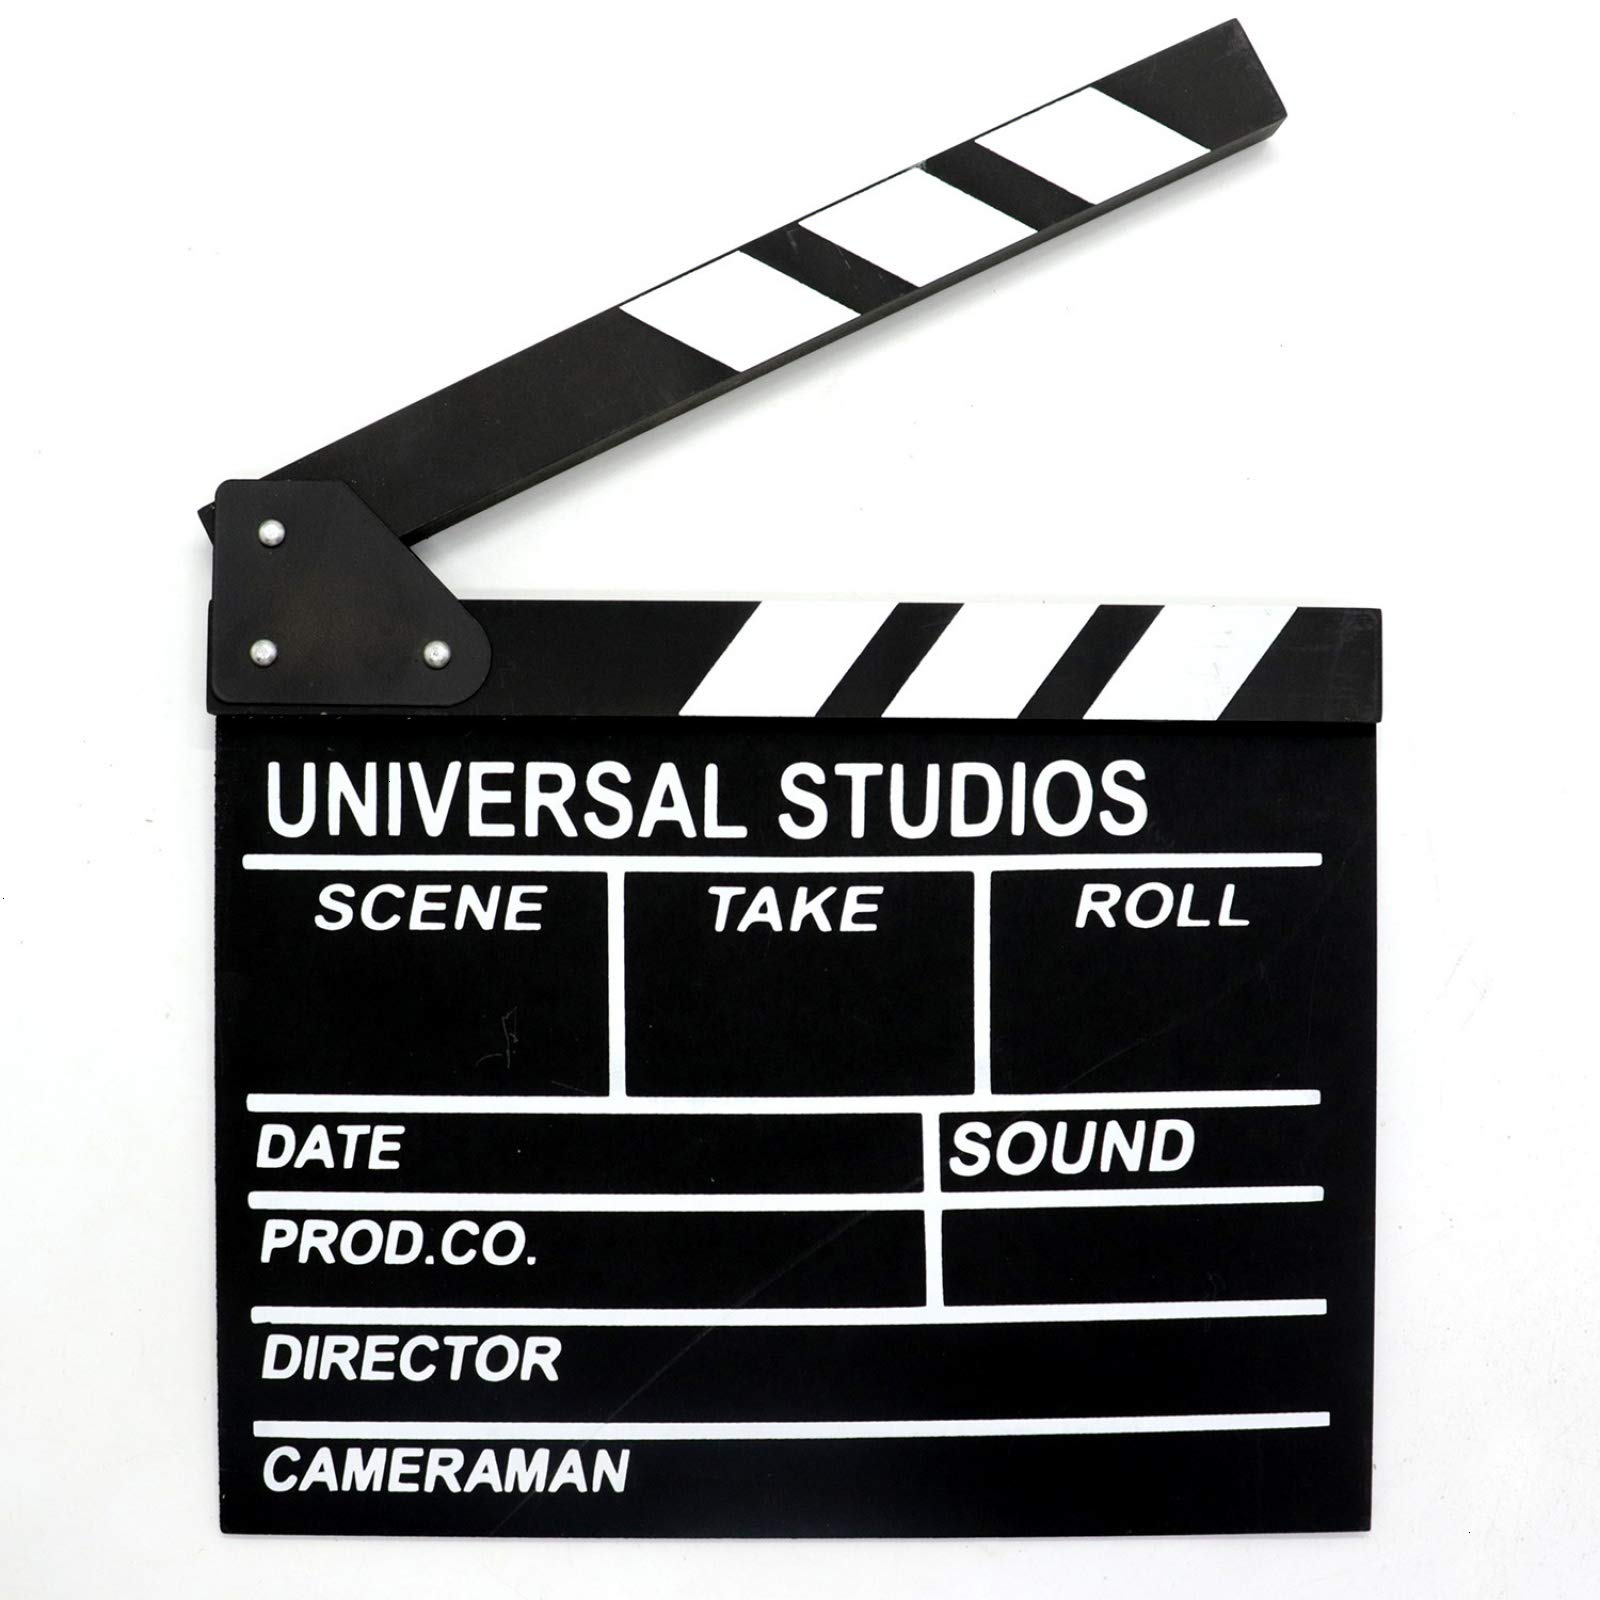 AQUEENLY Film Clapper Board Wooden Movie Slateboard Black Action Cut Board 11.7 inches x 10.6 inches